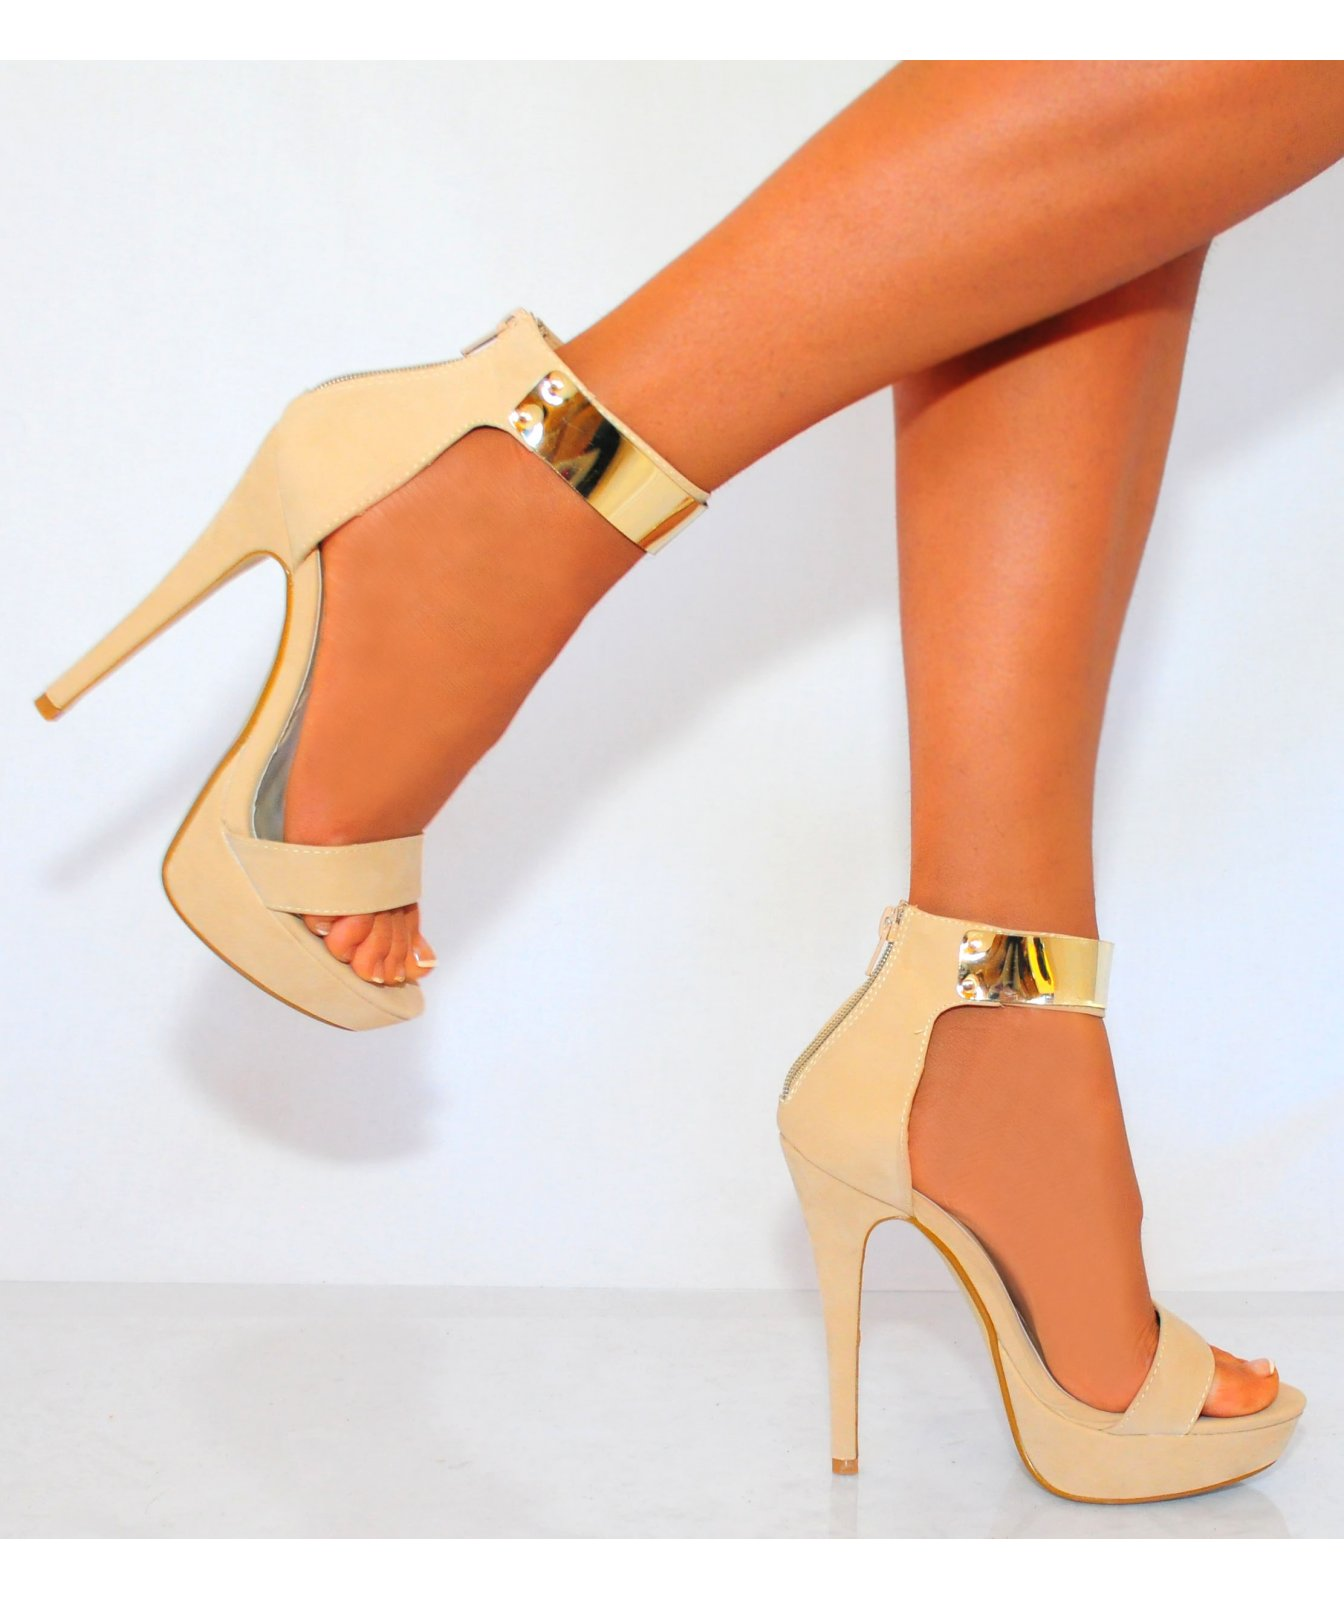 Nude And Gold Heels 0rPgtE6o